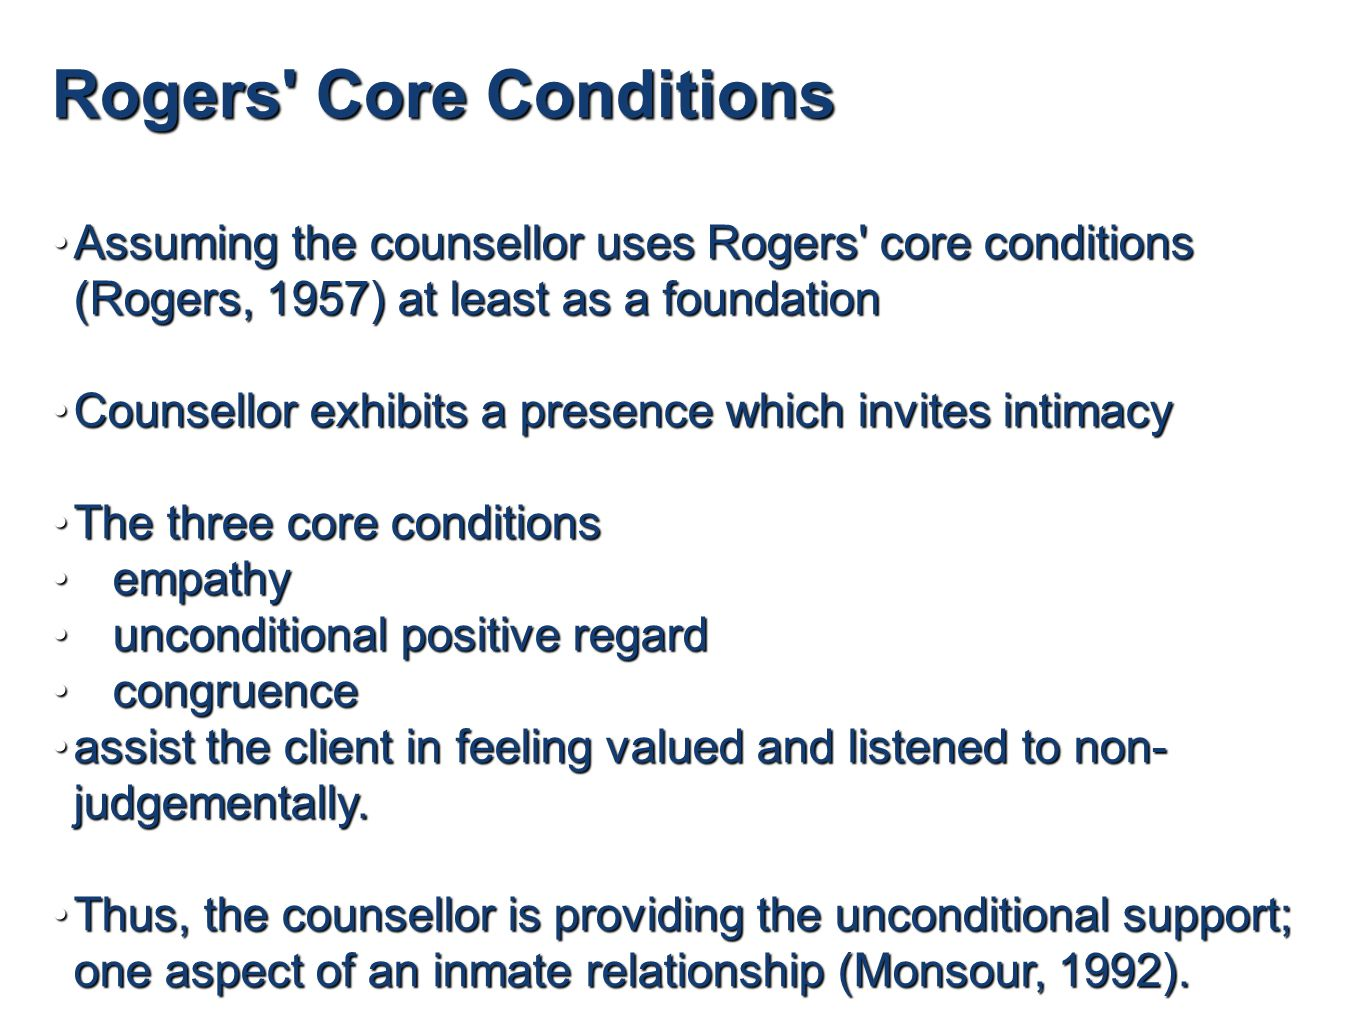 rogers core conditions